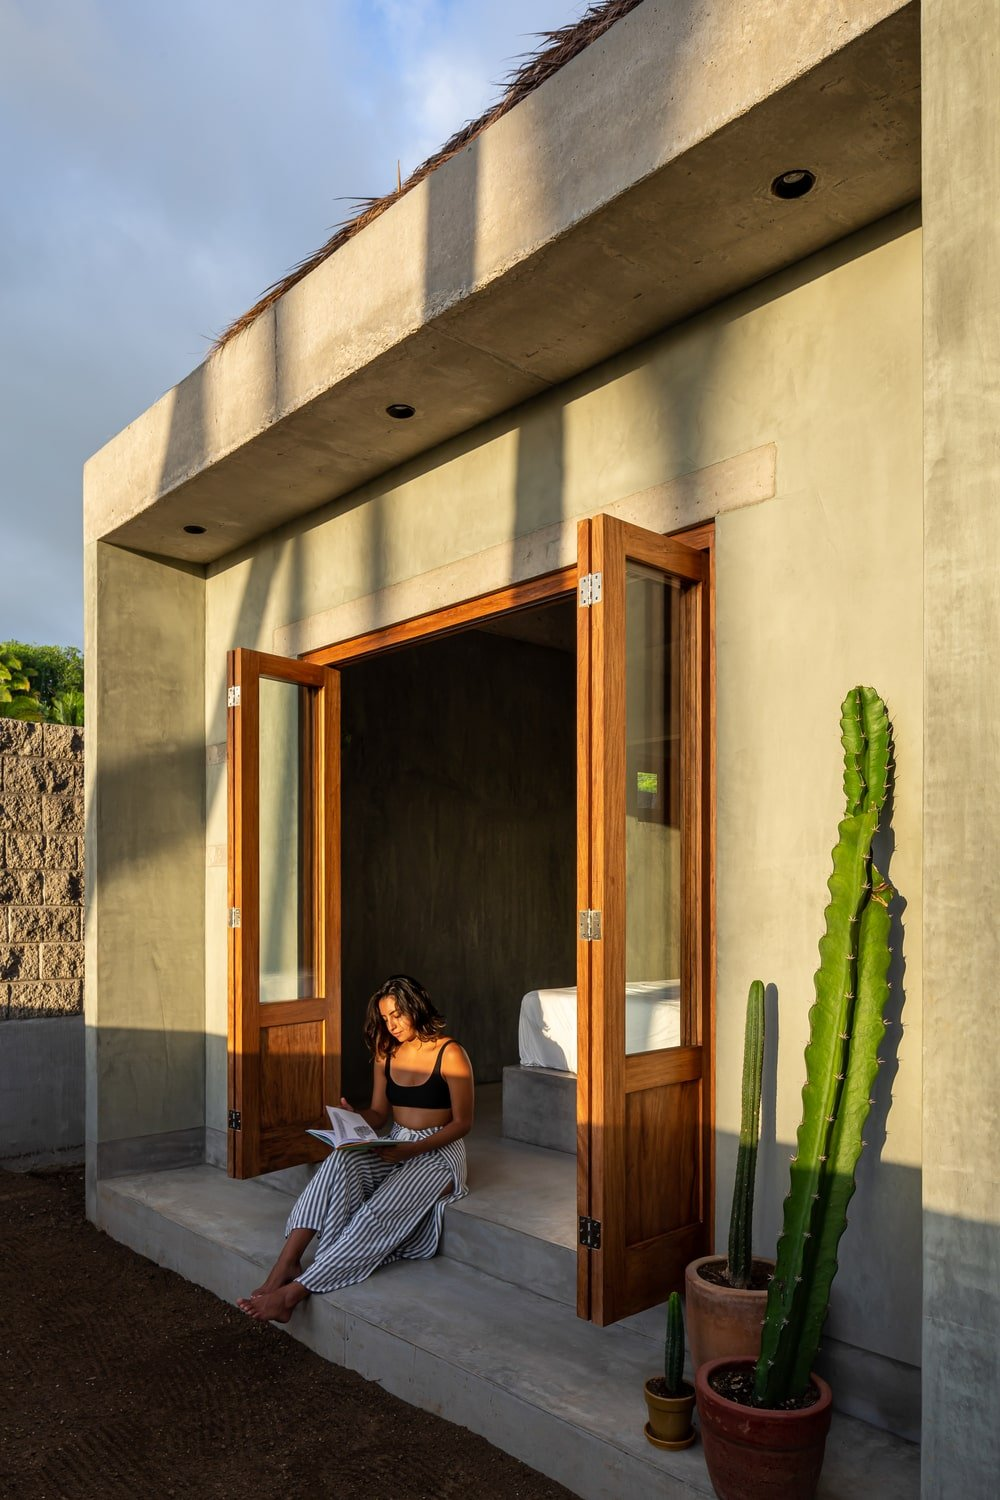 The side of the folding doors is adorned with a variety of cacti in pots.